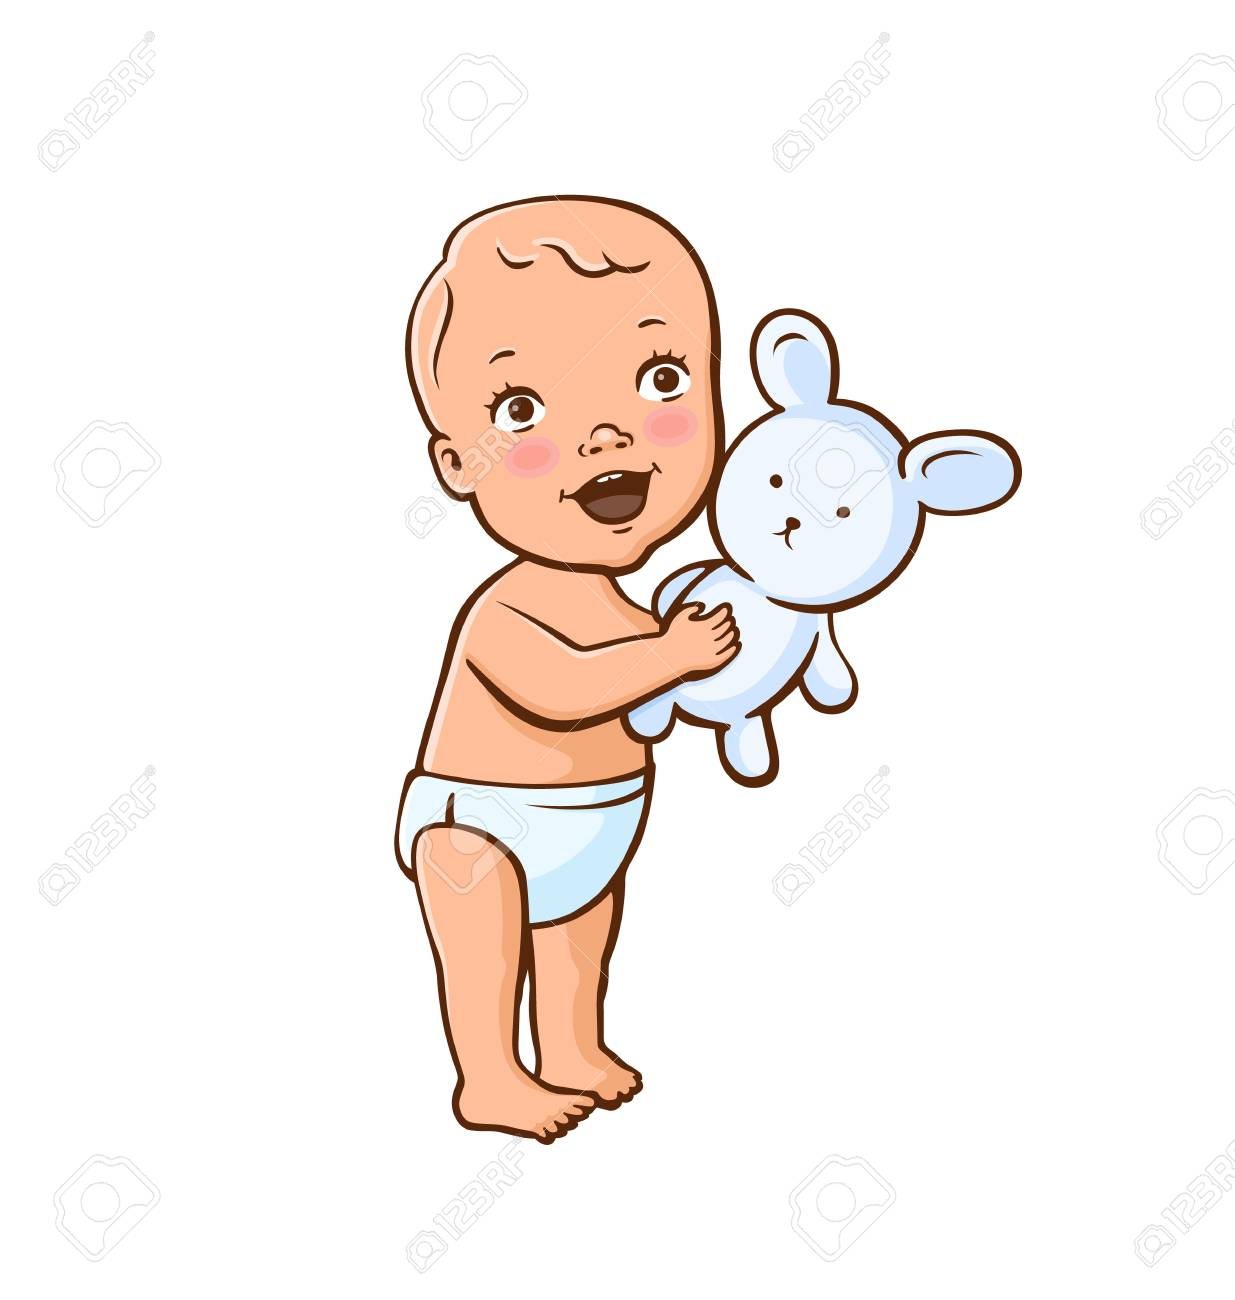 71881 Baby free clipart.